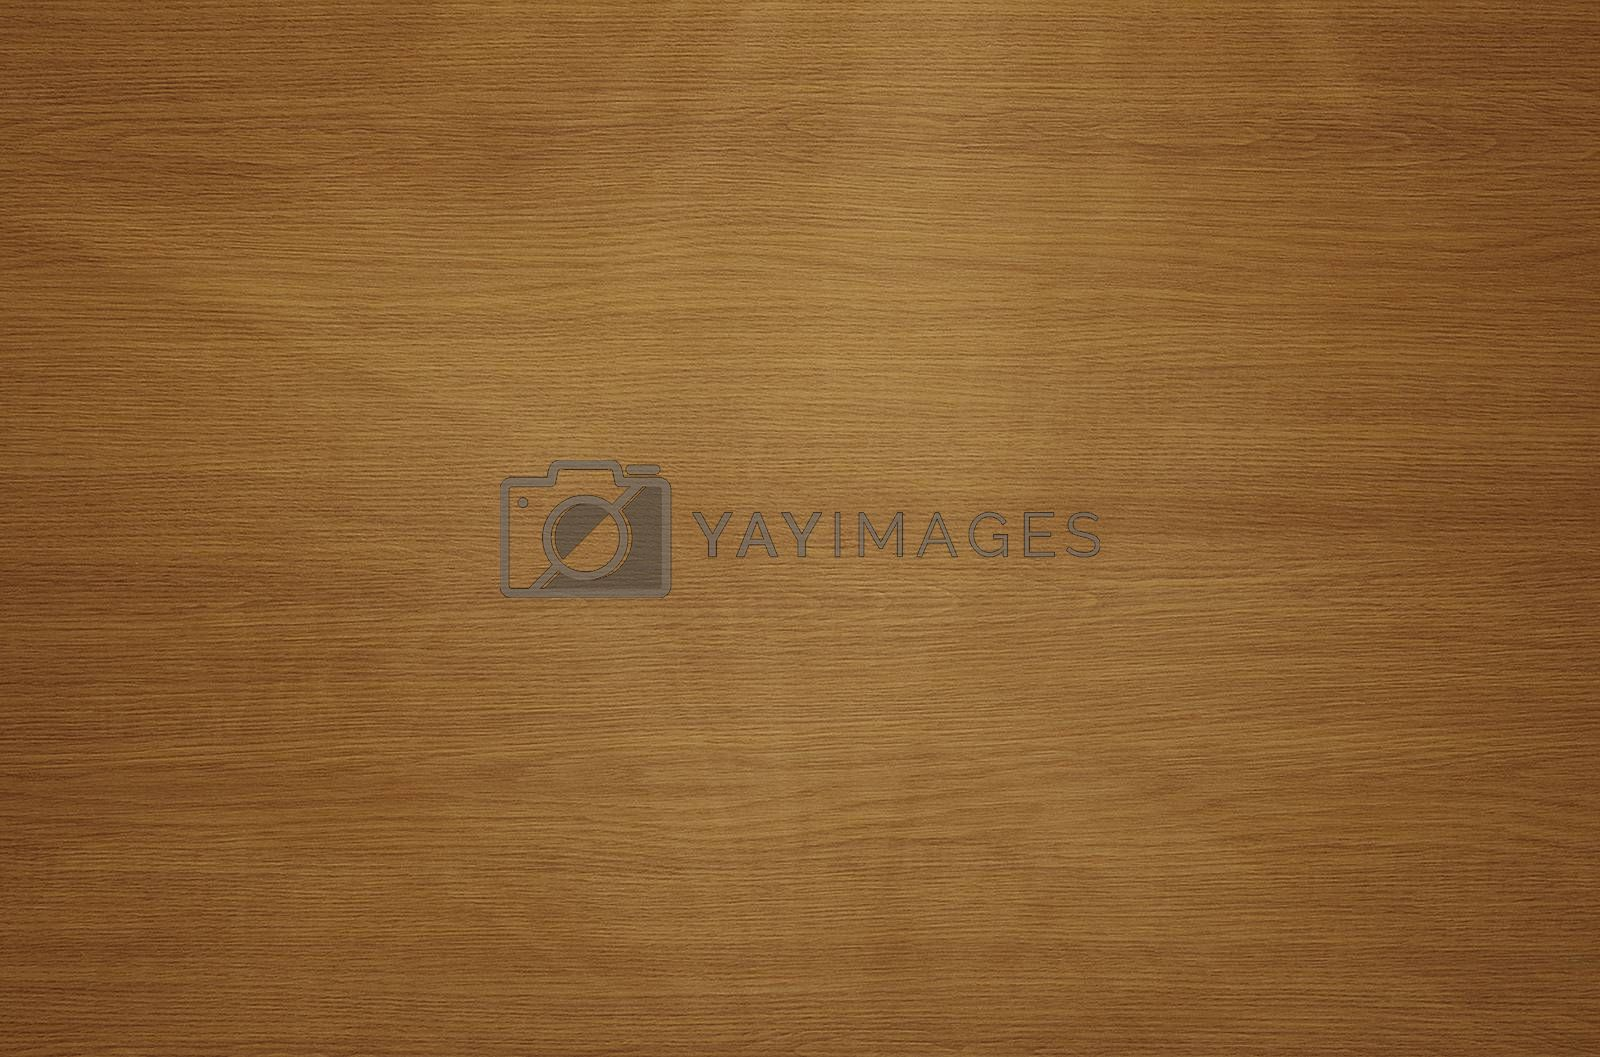 brown grunge wooden texture to use as background, wood texture with natural pattern